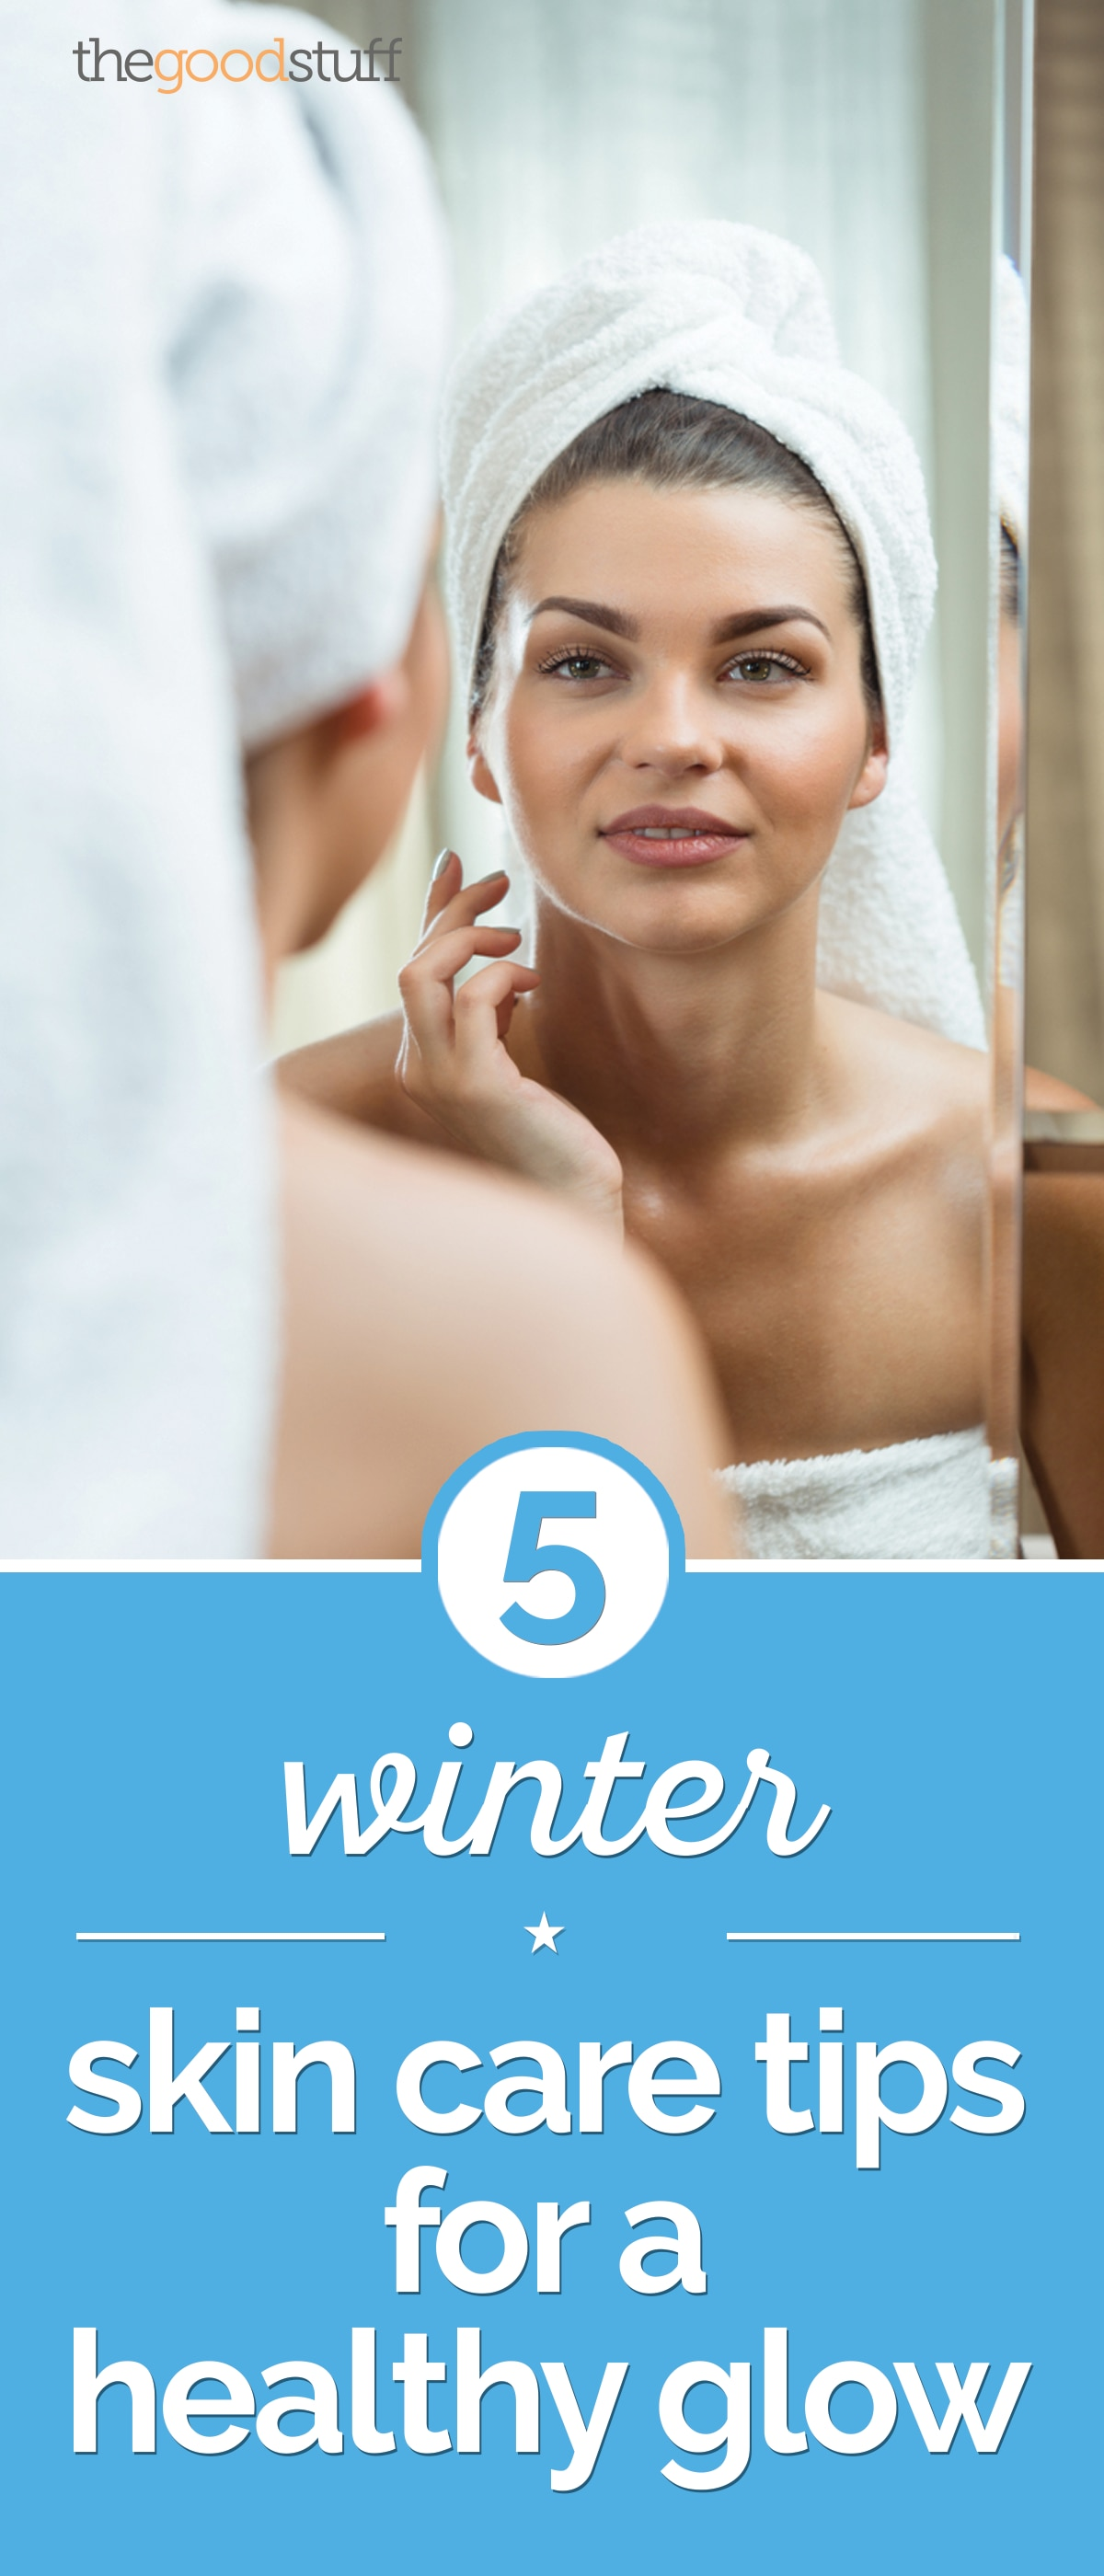 5 Winter Skin Care Tips for a Healthy Glow